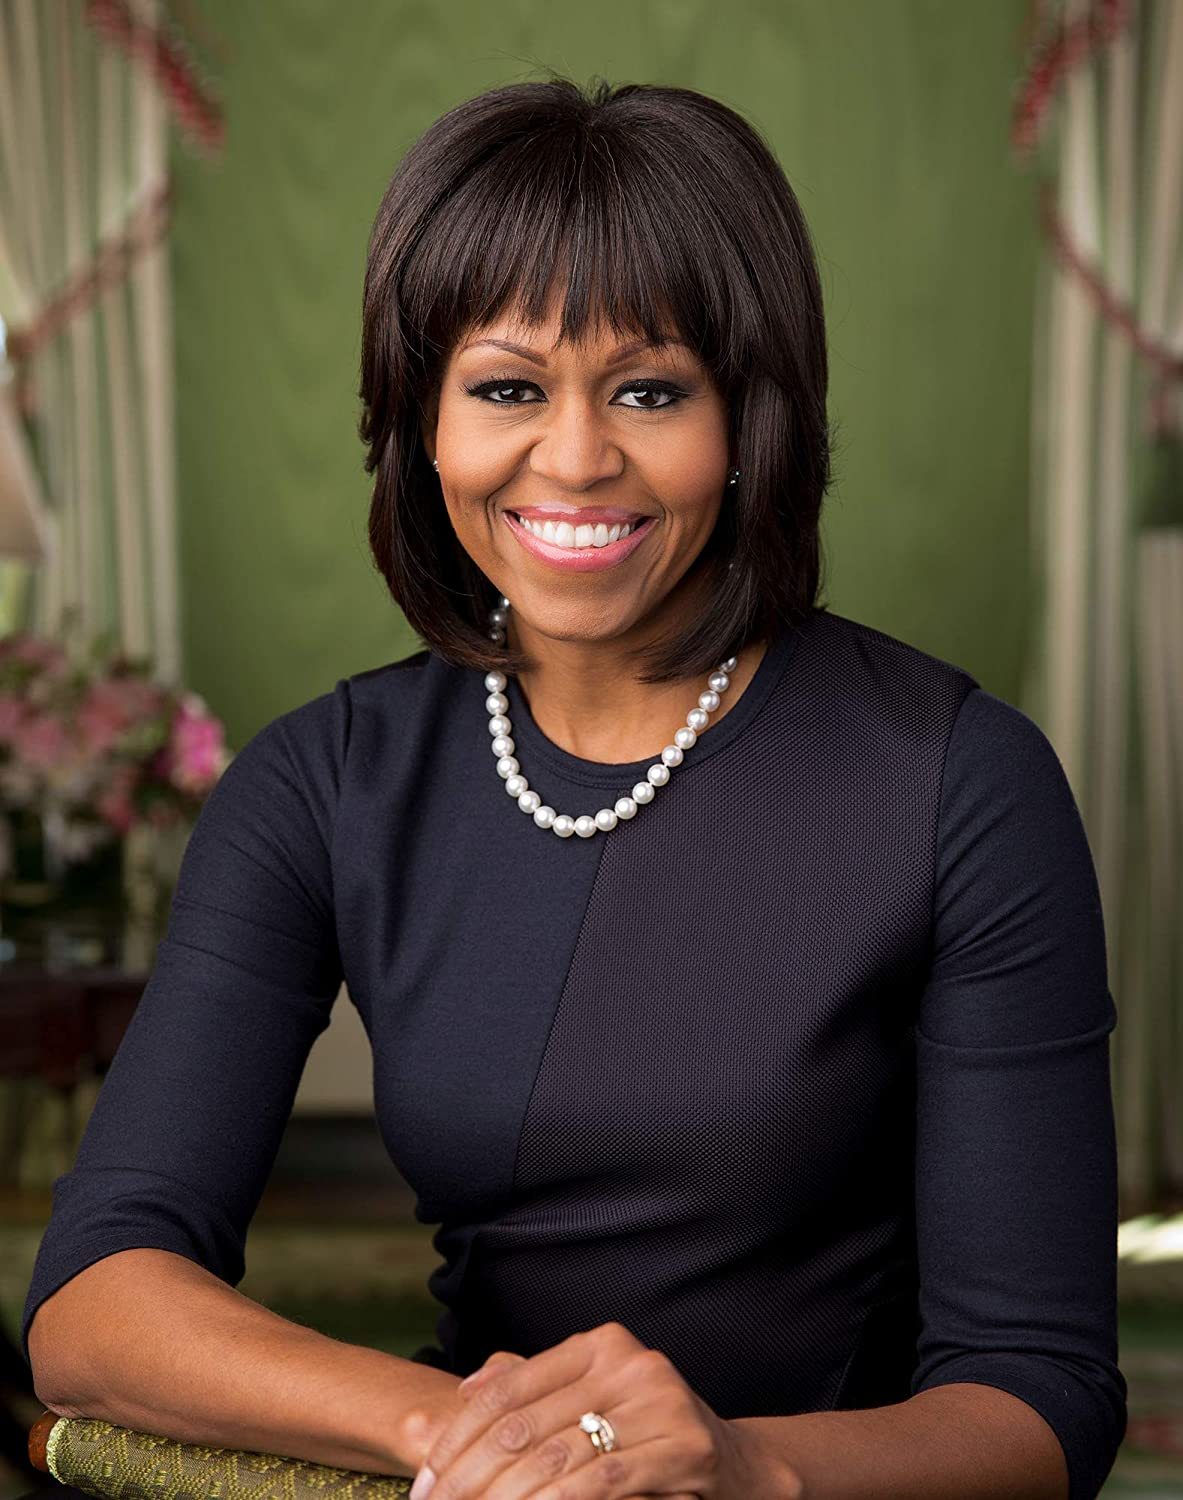 Official portrait of First Lady High quality Hist - Obama Photograph Large special price Michelle